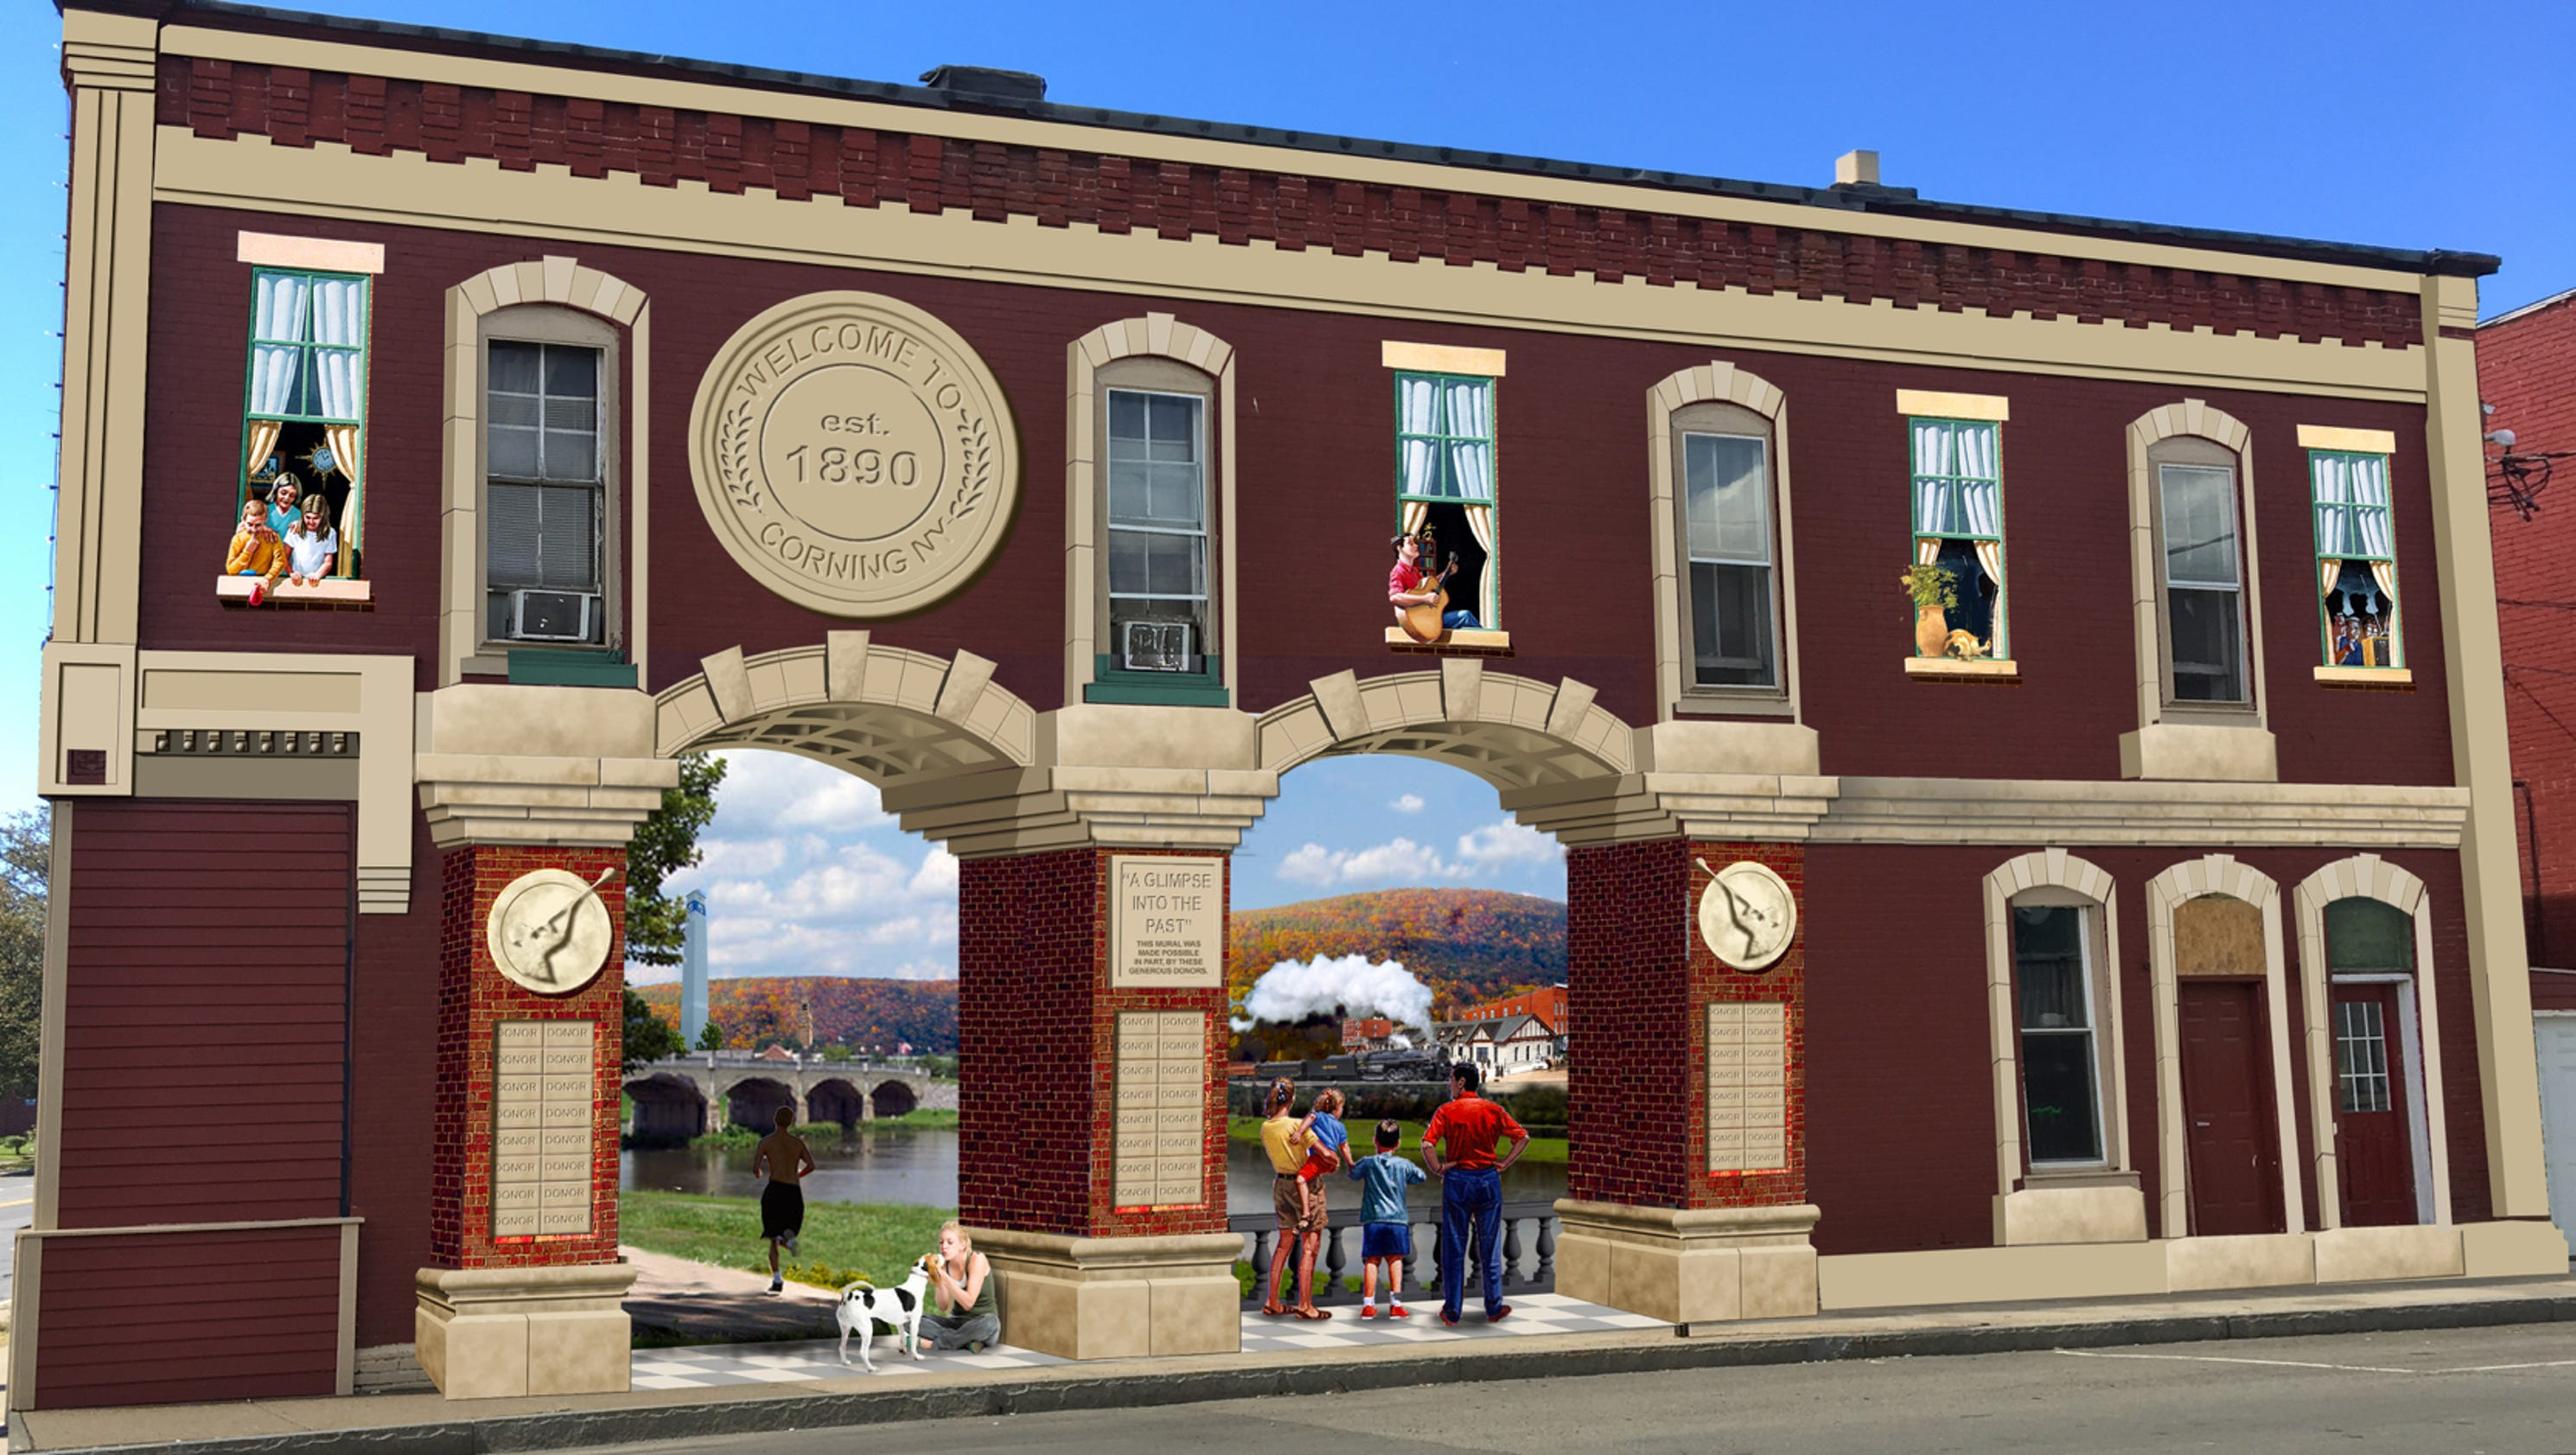 Corning Brewery Hopes Mural Will Brighten Neighborhood